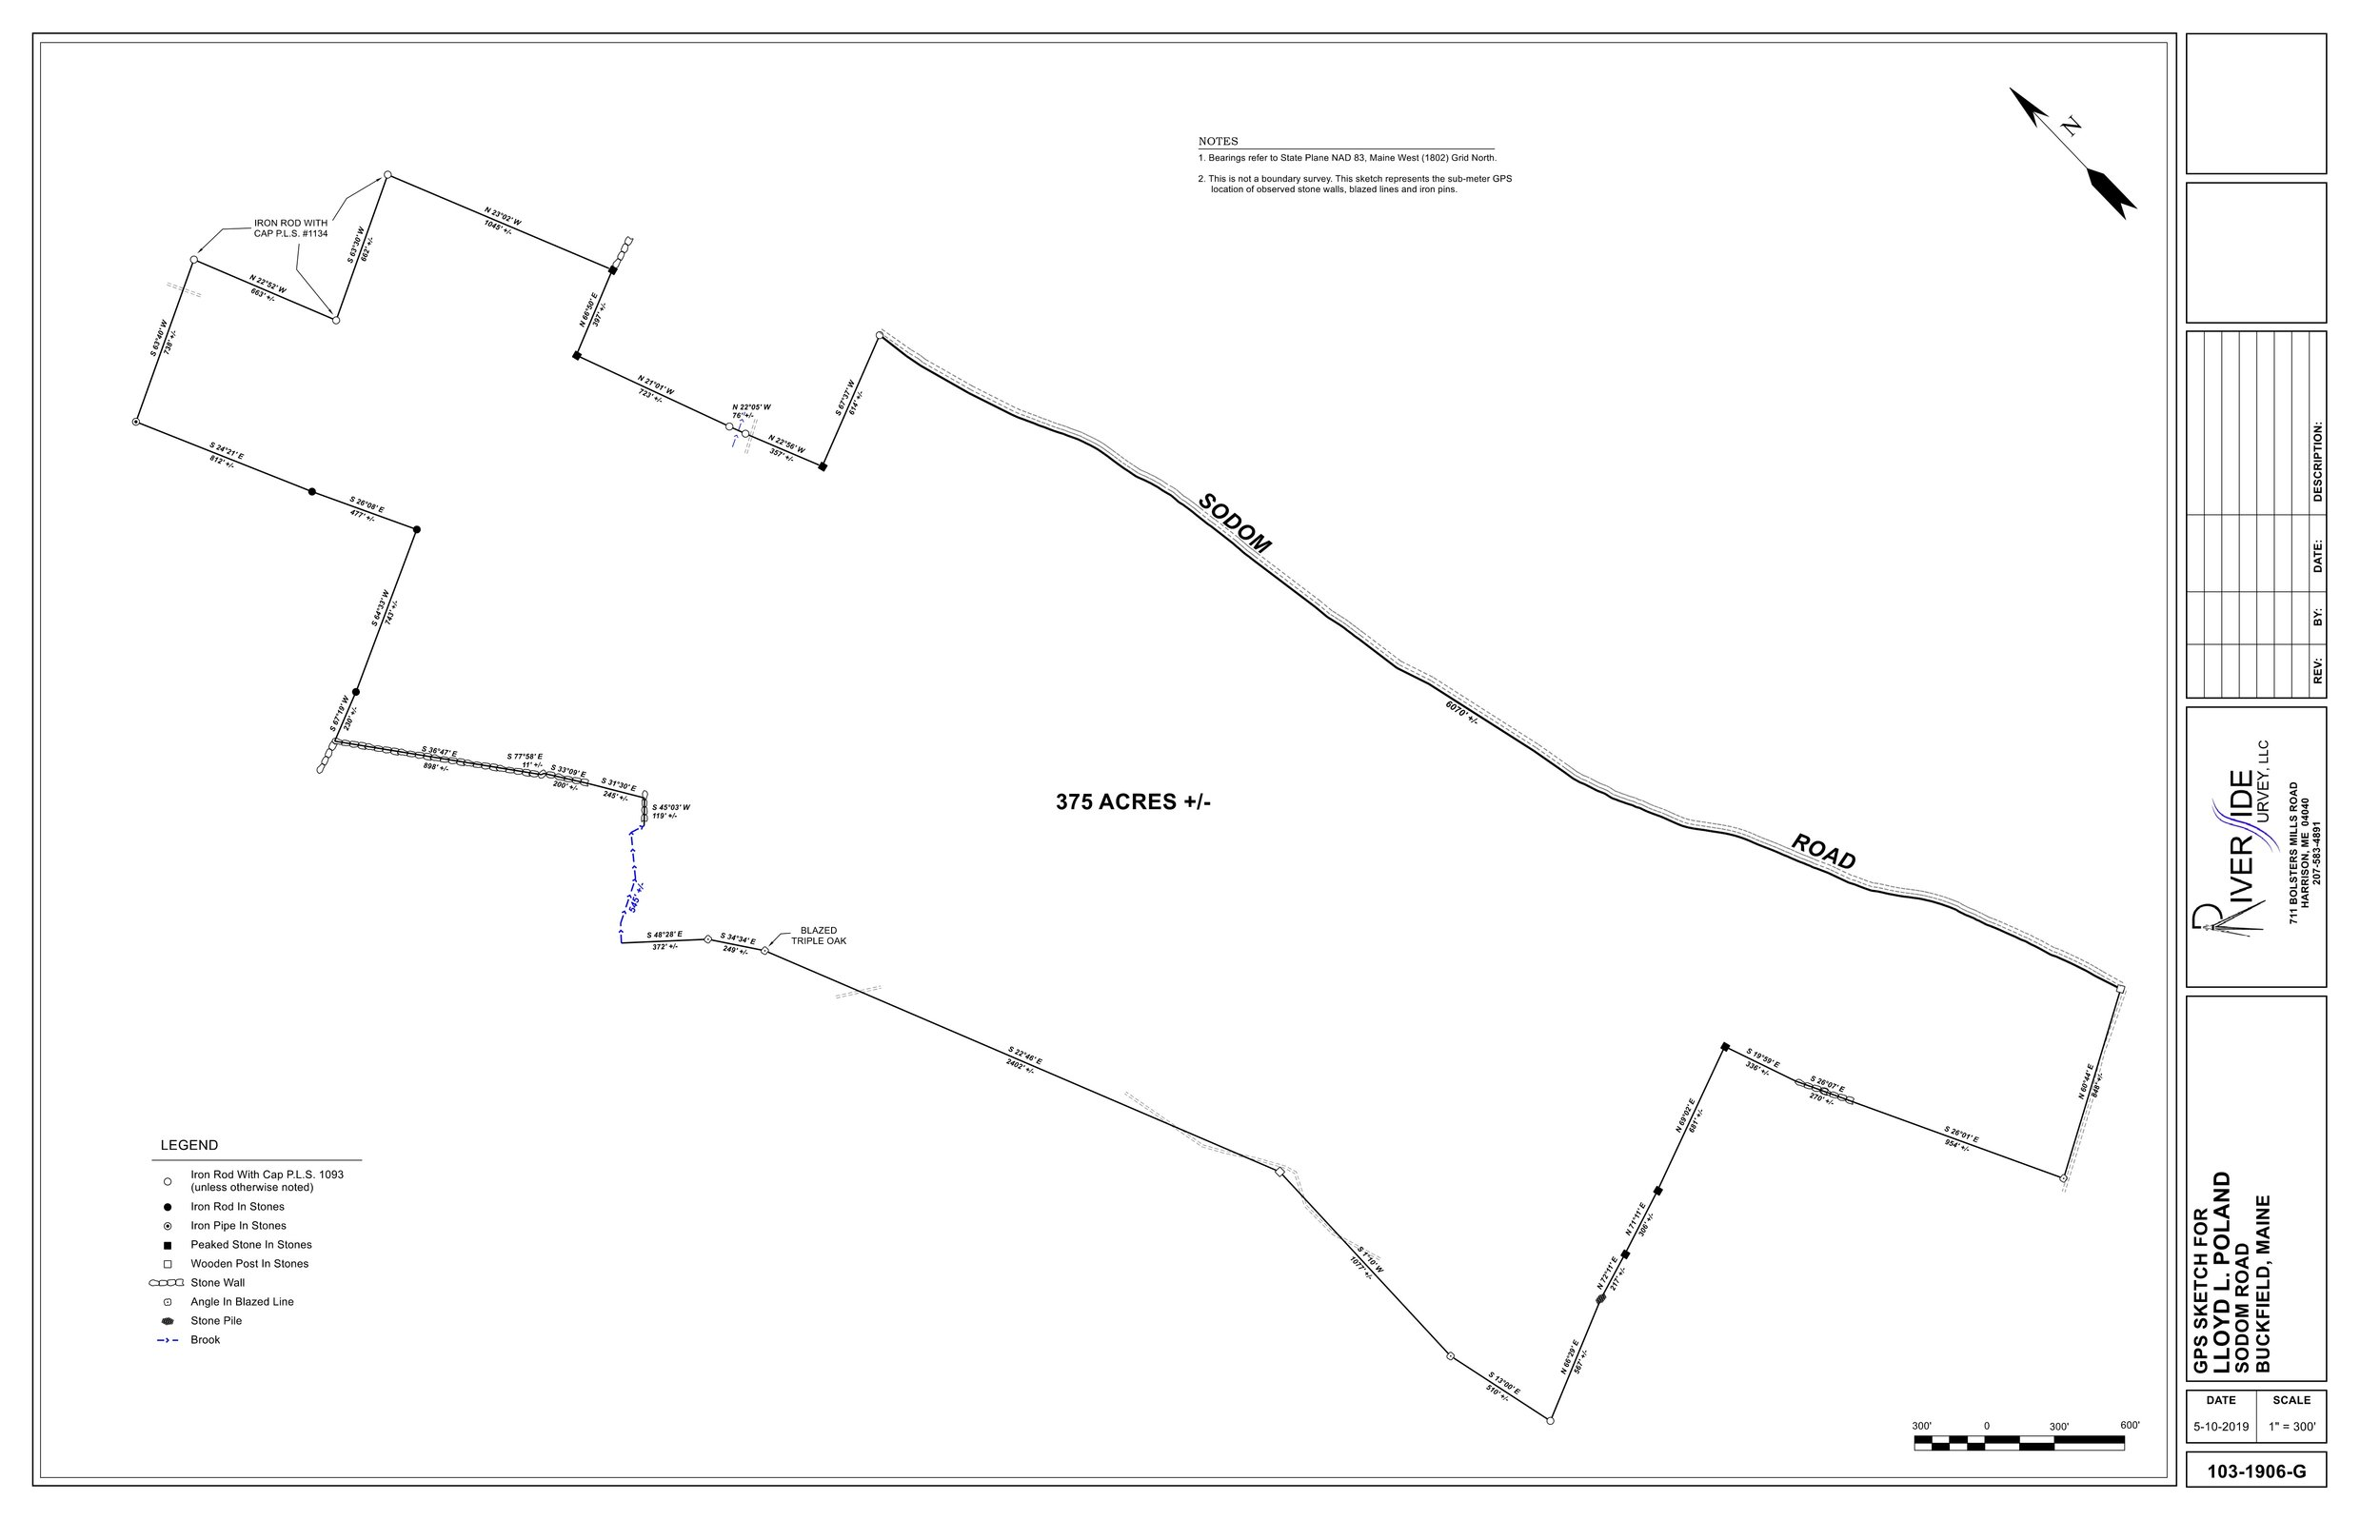 BUCKFIELD - Click Here To View The PDF MapClick Here To Download The Google Earth Link